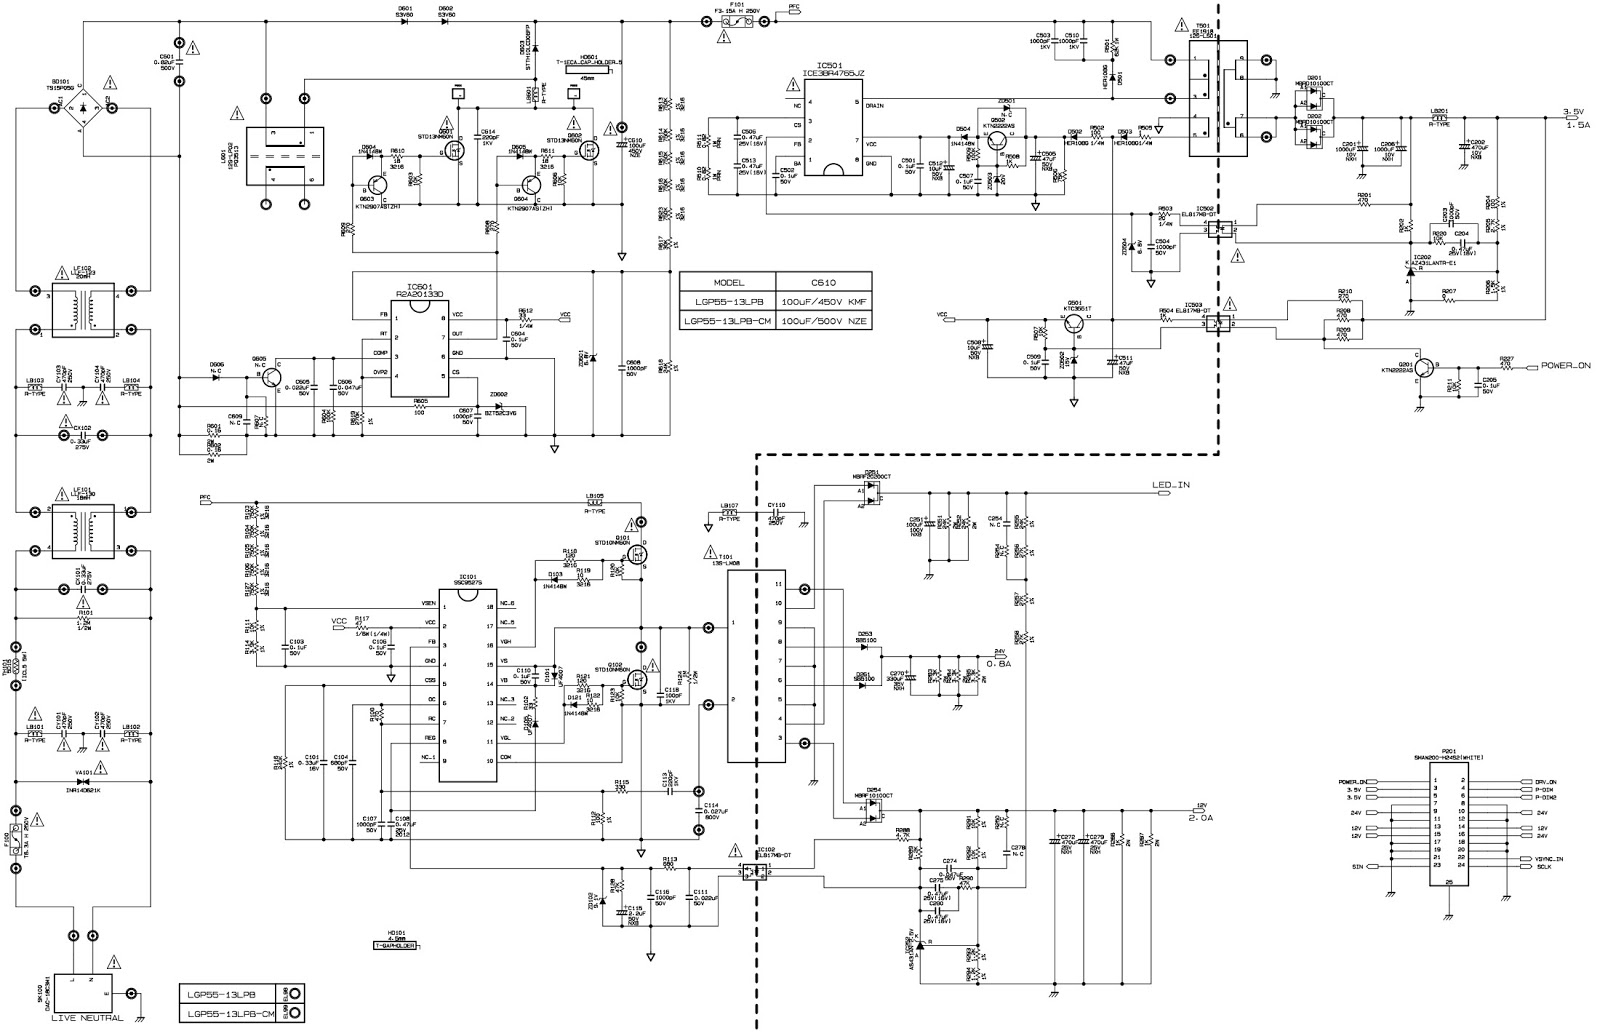 power supply schematic diagram furthermore power supply kits power atx power supply schematic diagram likewise atx power supply schematic [ 1600 x 1036 Pixel ]